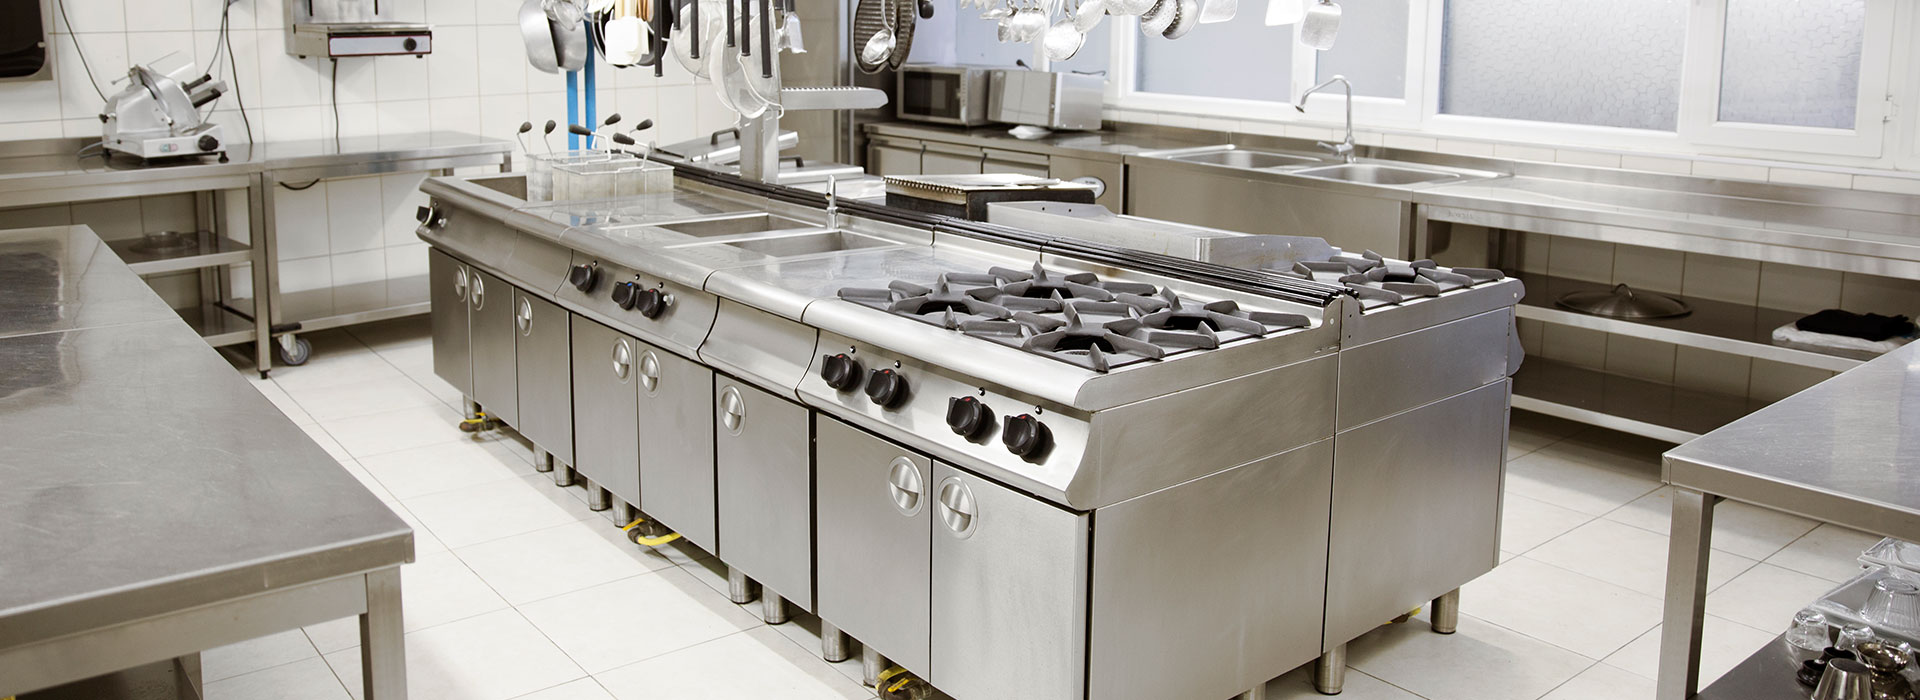 Commercial Appliance Repair Company VA